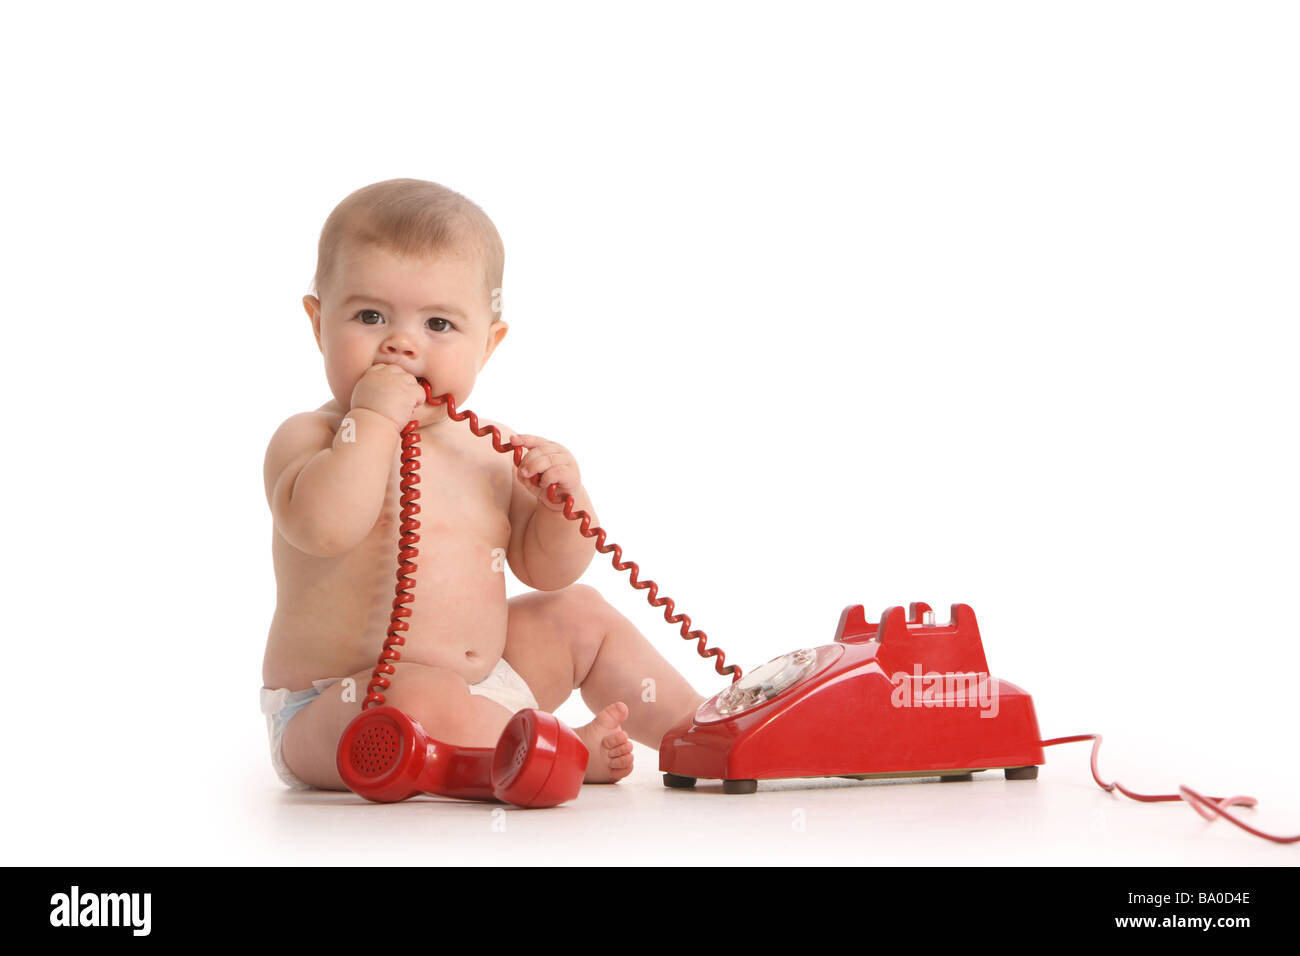 Baby with red phone on white background - Stock Image